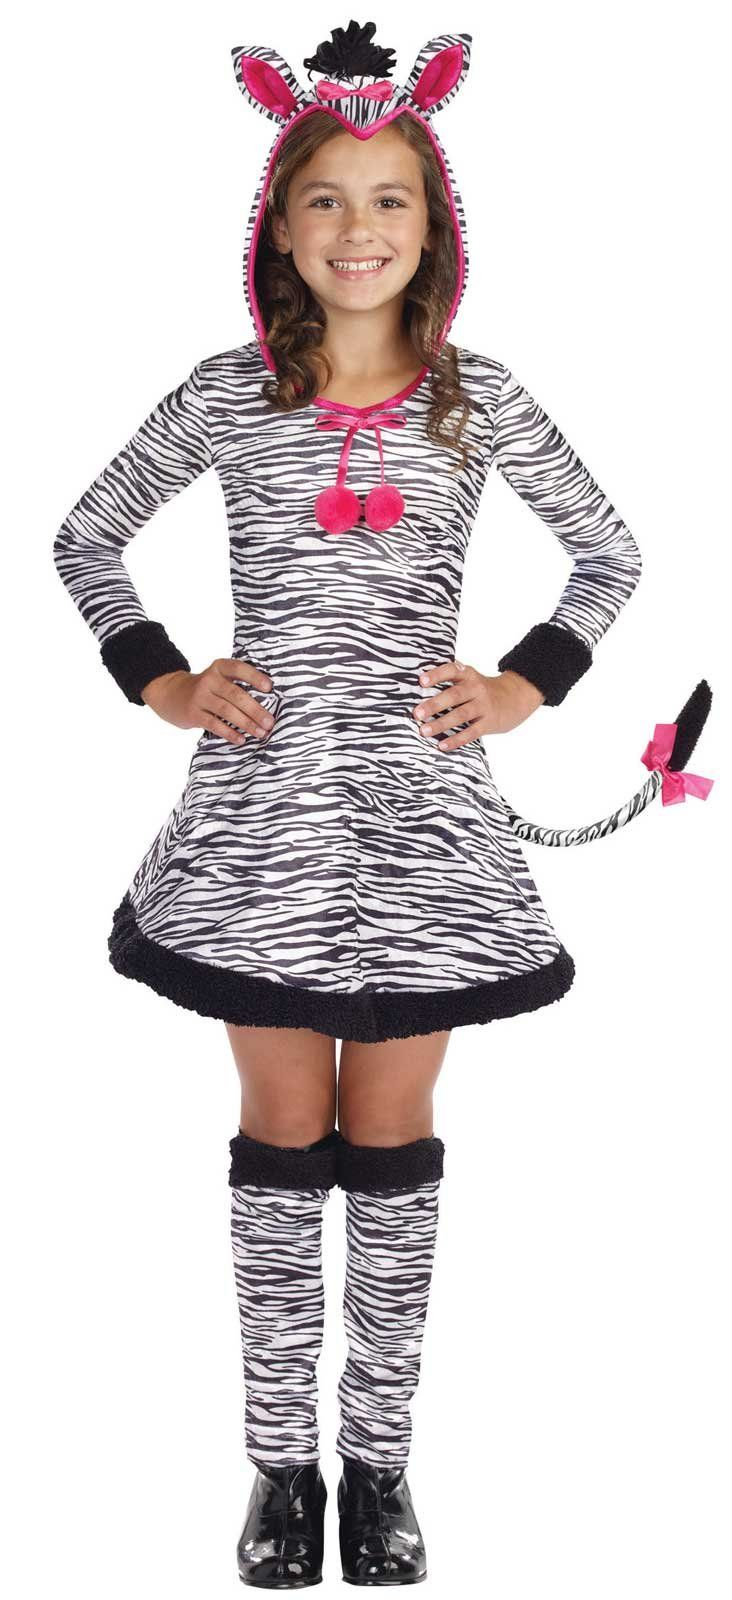 Lil' Wild Thang Zebra Child Costume from